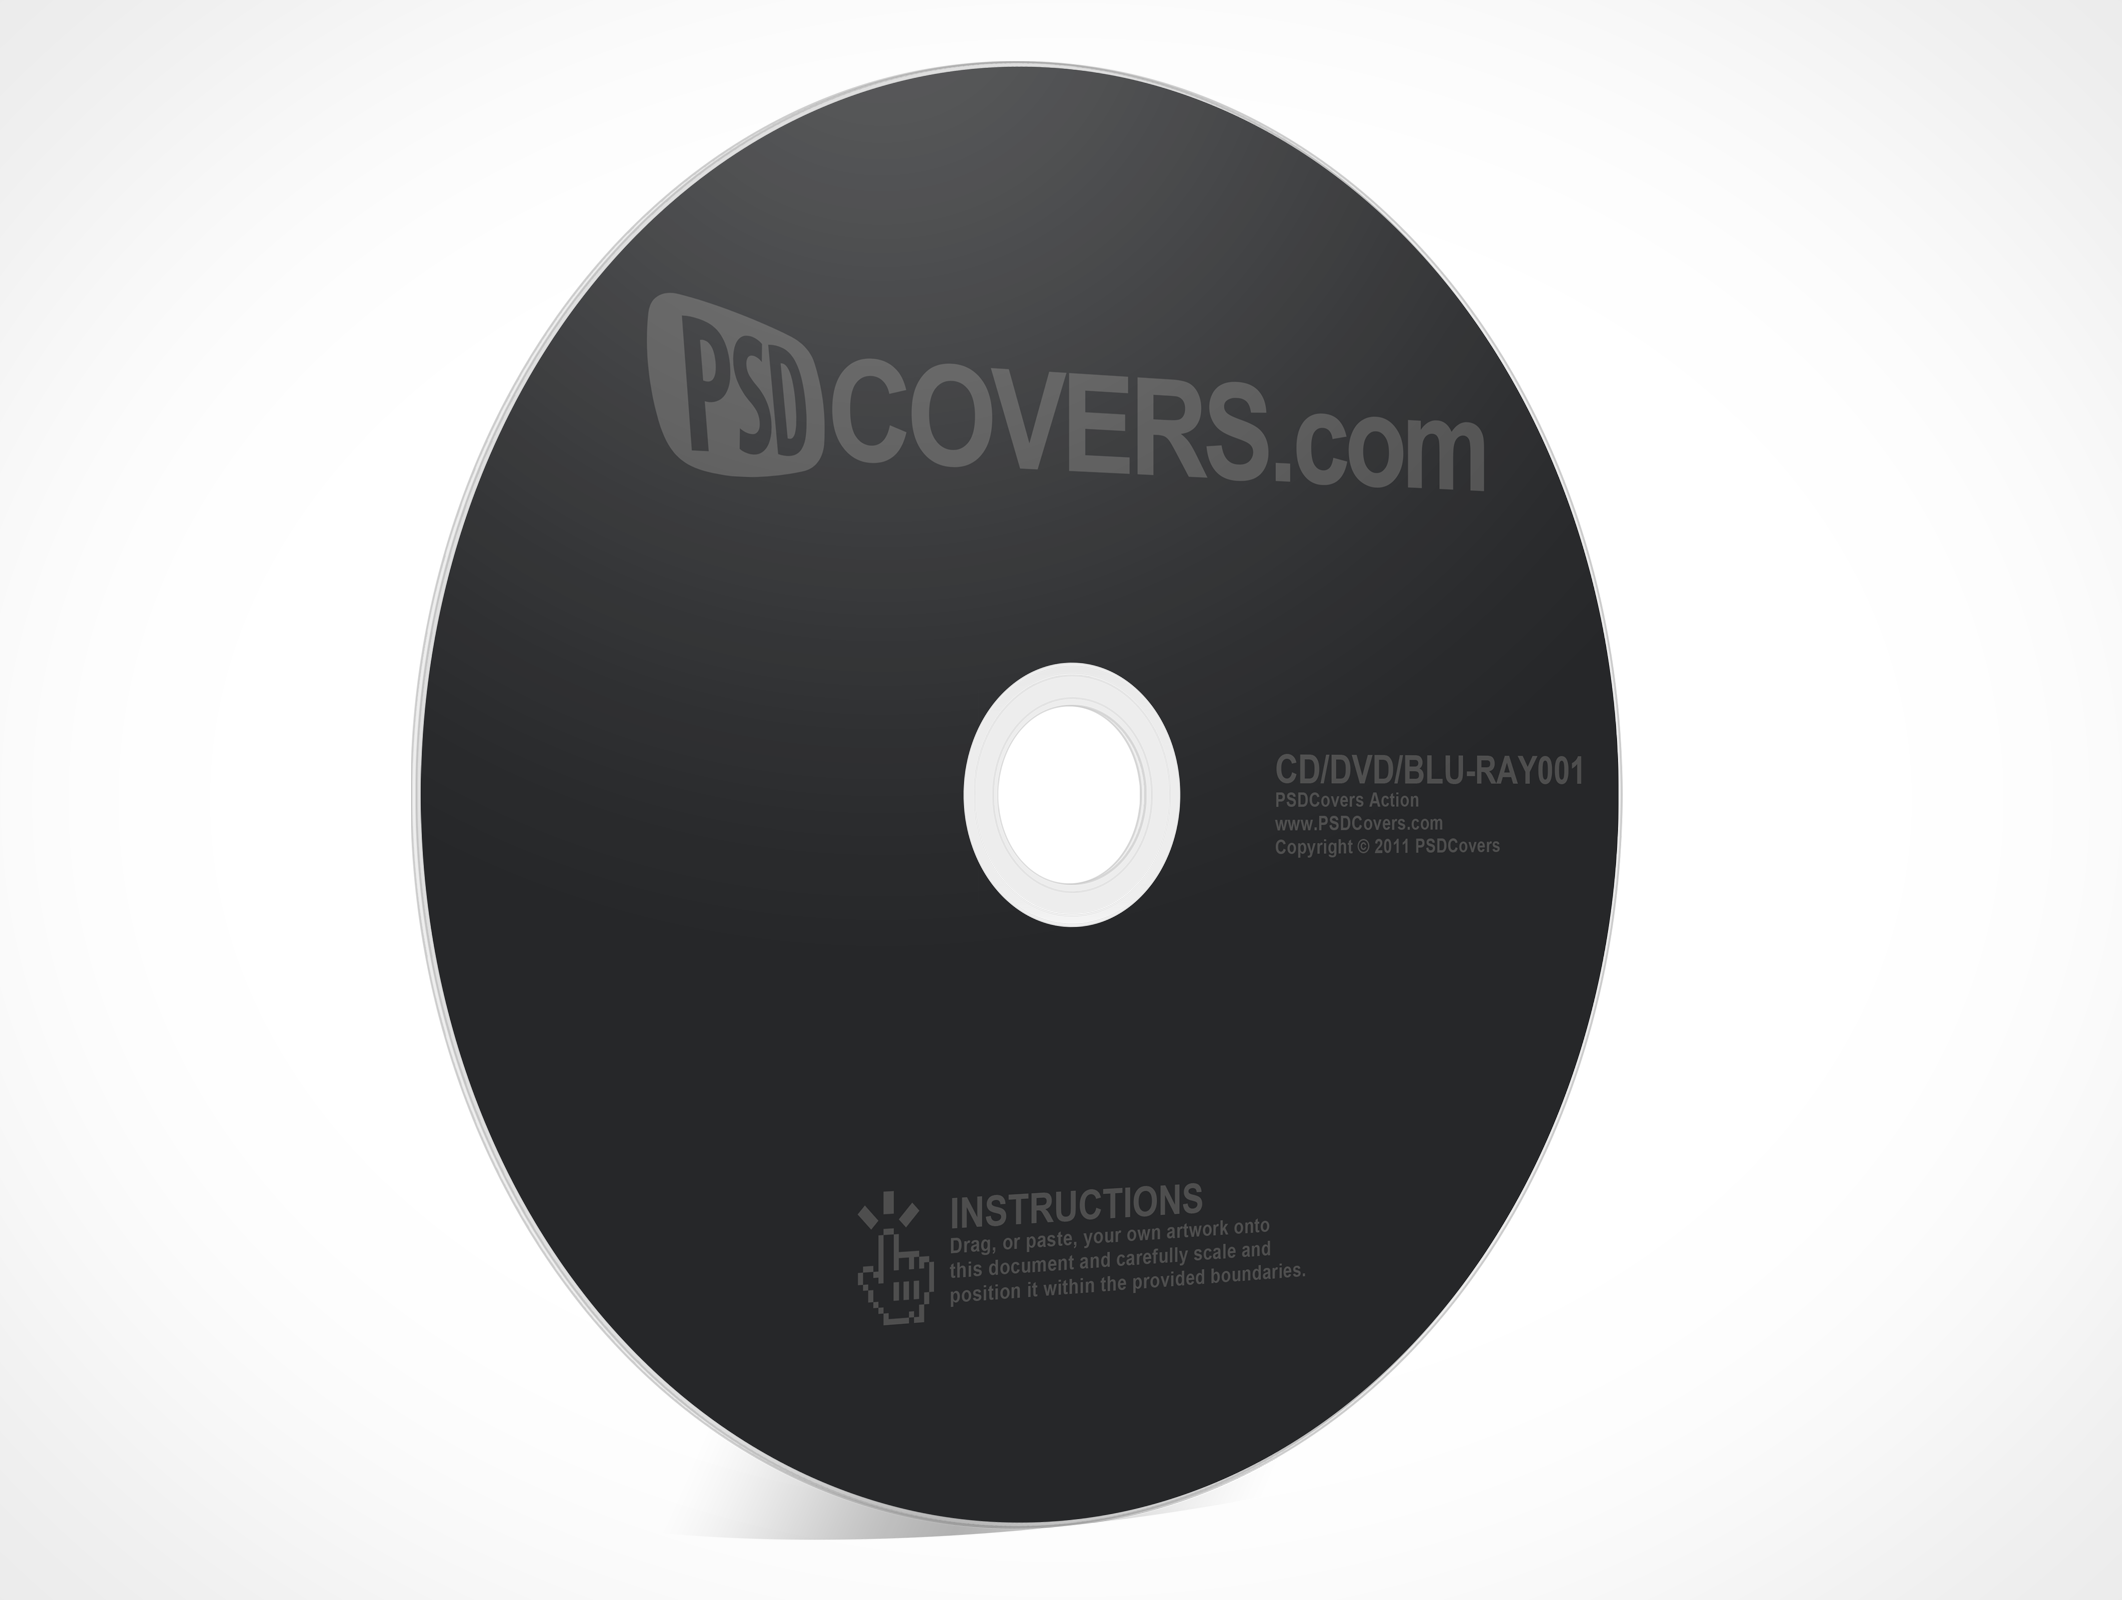 Psdcovers page of photoshop. Cd disk artwork